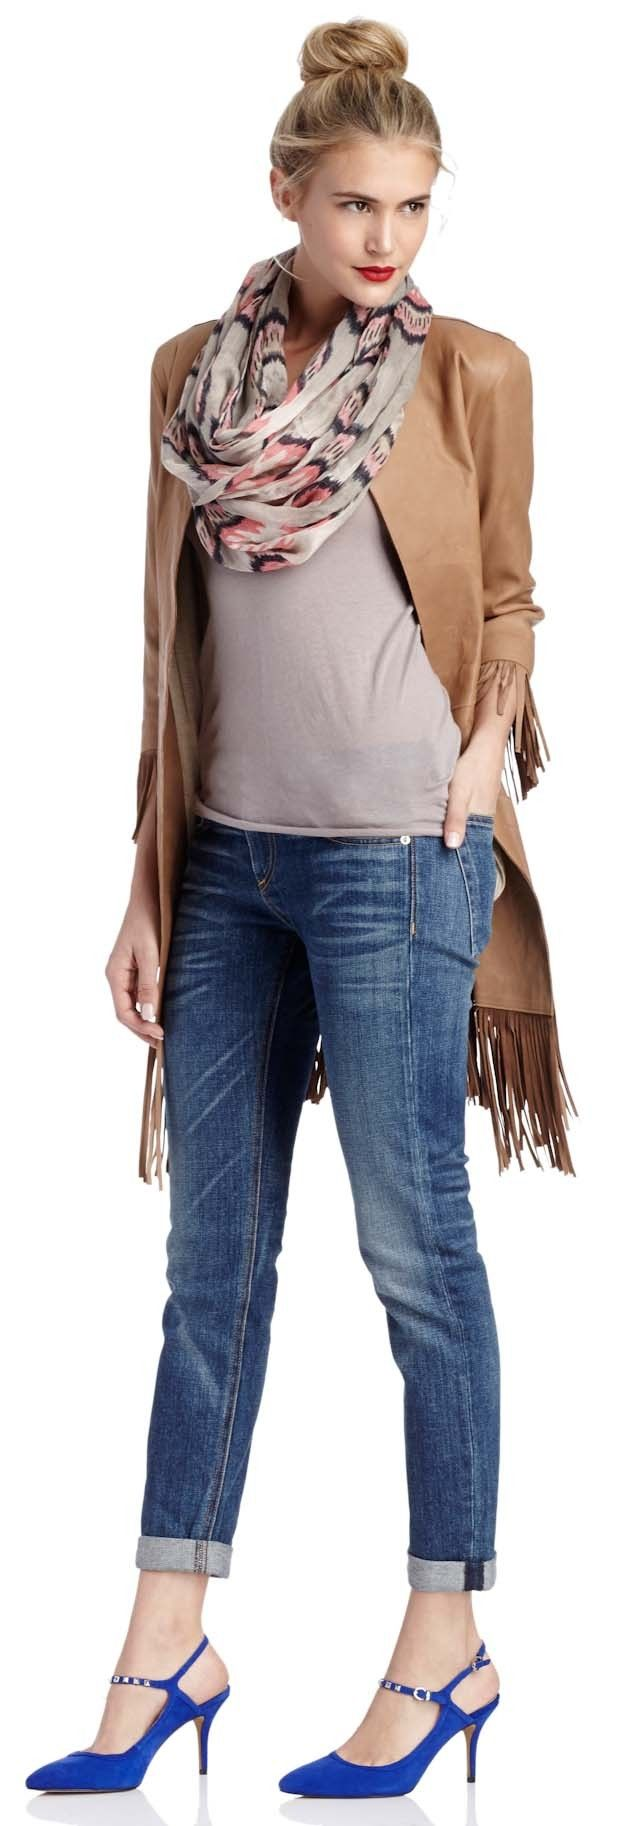 "Sole Society ""Shop the Look"" - scarf, long fringe jacket, jeans, t-shirt and great blue slingback mid heel shoes!  Love the whole outfit!"